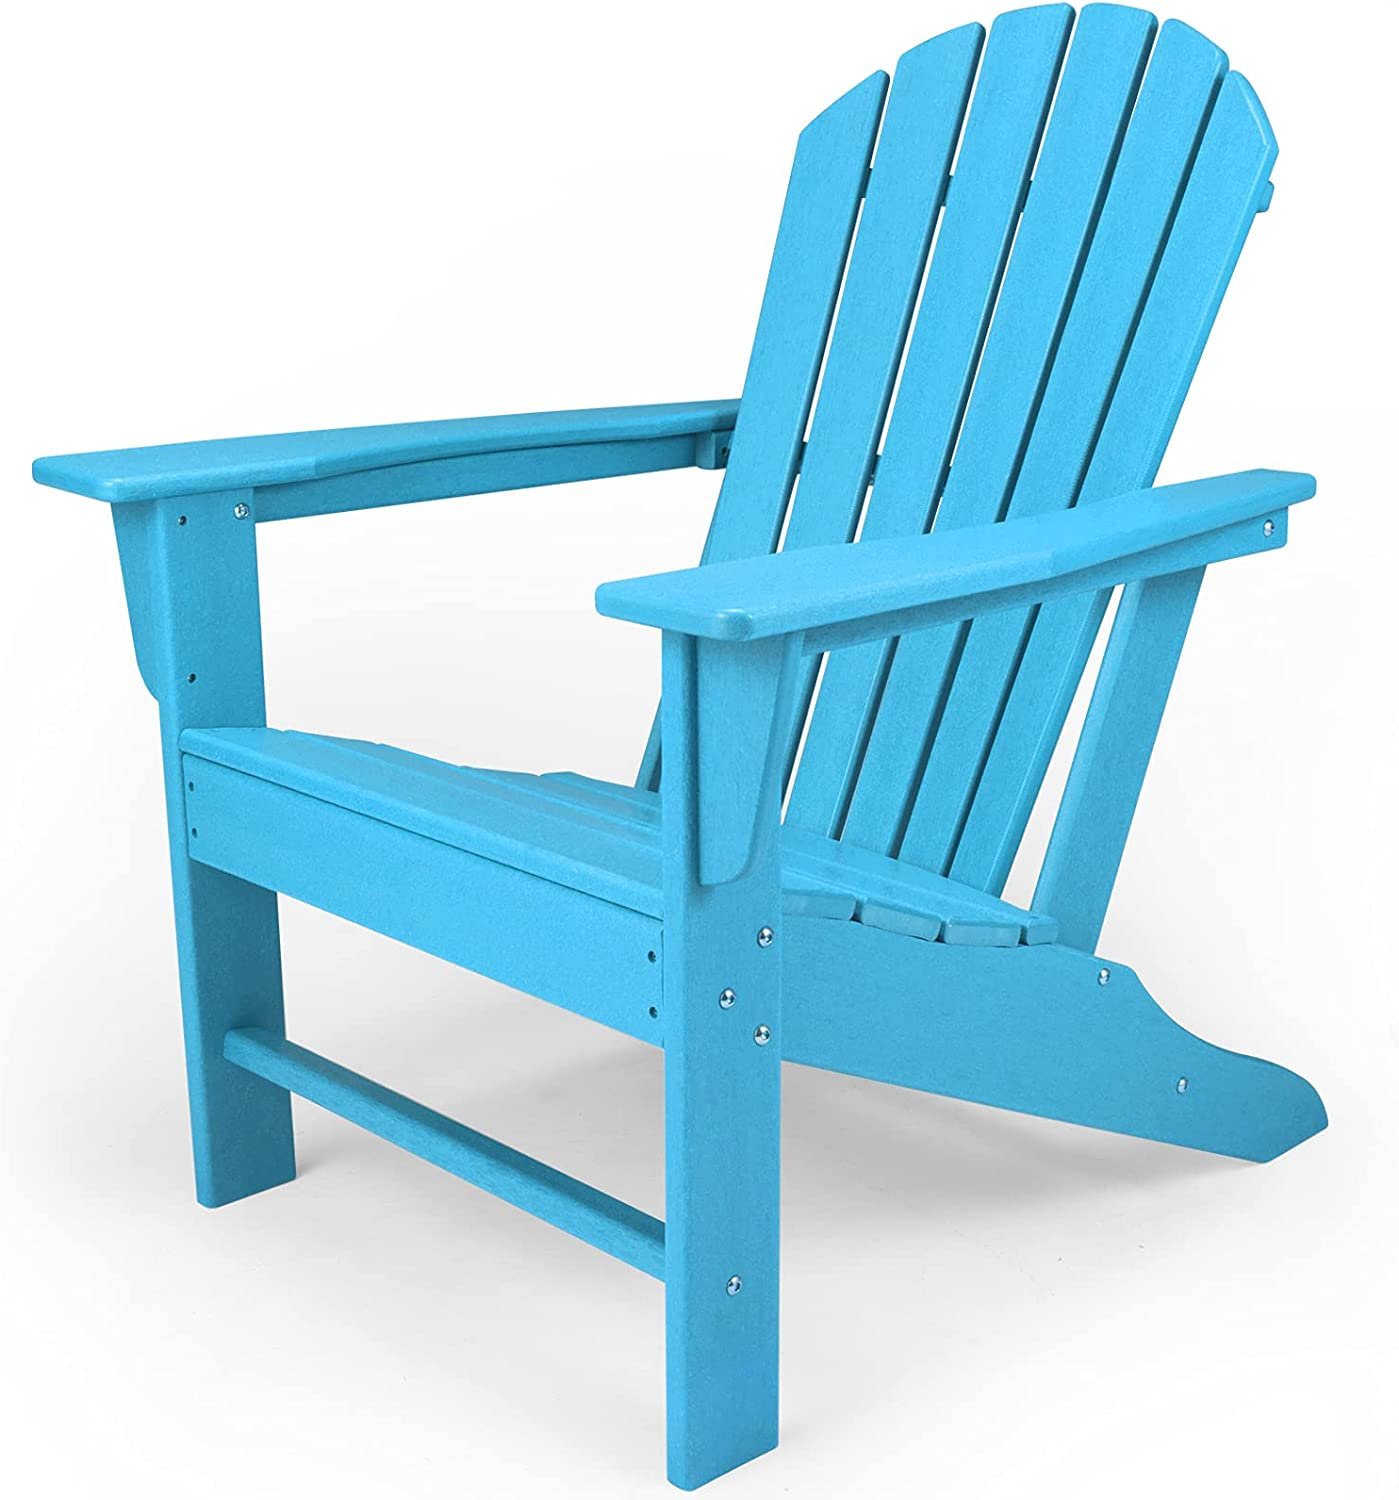 HDPE Adirondack Chair, Patio Outdoor Chairs, Plastic Resin Deck Chair, Painted Weather Resistant, for Deck, Garden, Backyard & Lawn Furniture, Fire Pit, Porch Seating by DAILYLIFE (Aquamarine)